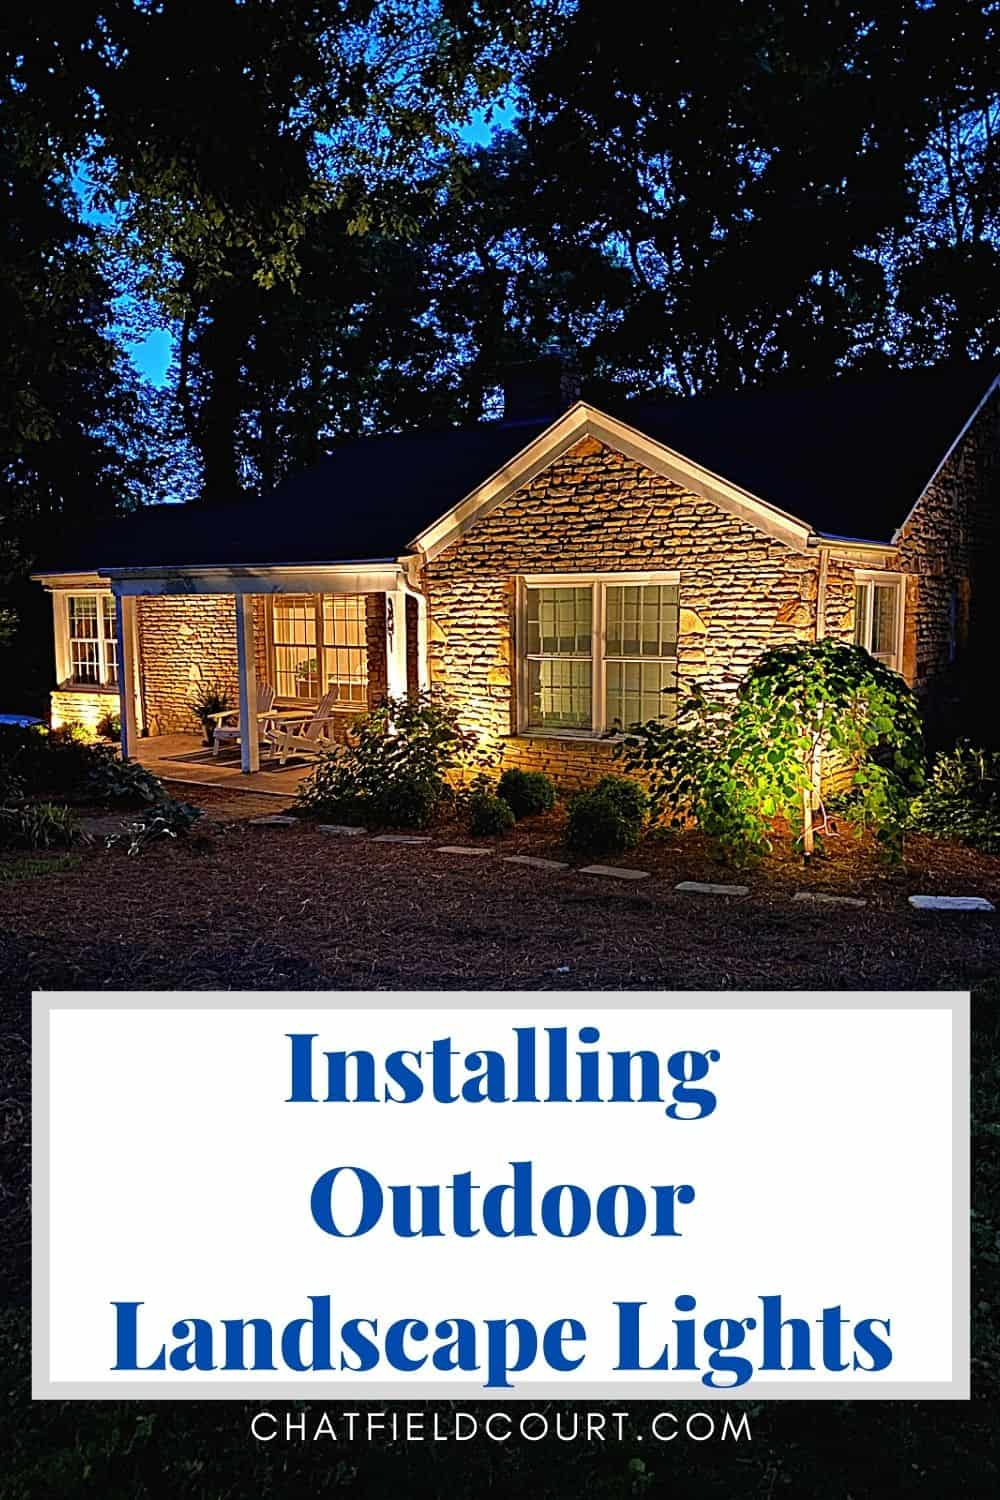 stone cottage at night with outdoor lights and large pinterest graphic